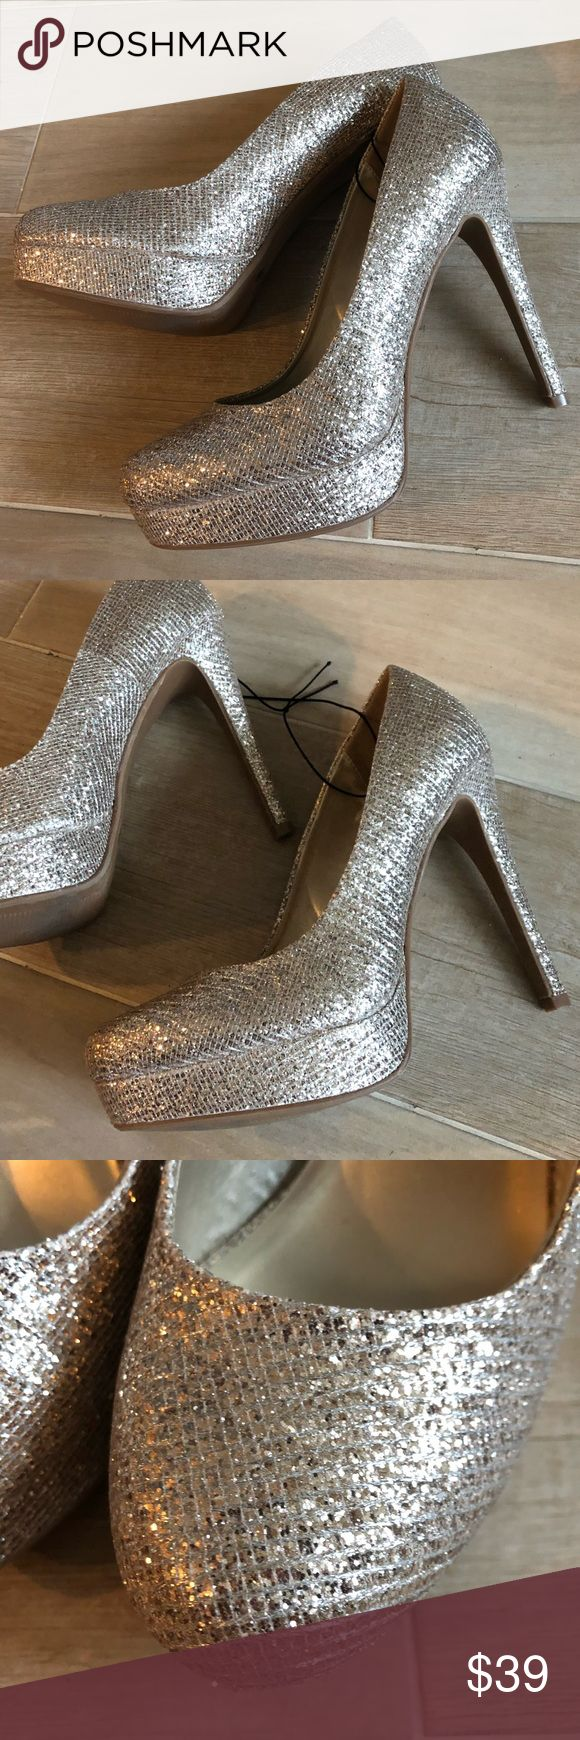 NEW Chinese Laundry Light Gold Sparkle Pumps Heels NEW Chinese Laundry Gold Sparkle Pumps    High Heel, classy with a flash of bling         Any questions, please ask.  Check out my closet for more new and stylish items.  ❤️🎉Offers Welcomed!🎉❤️ Chinese Laundry Shoes Heels